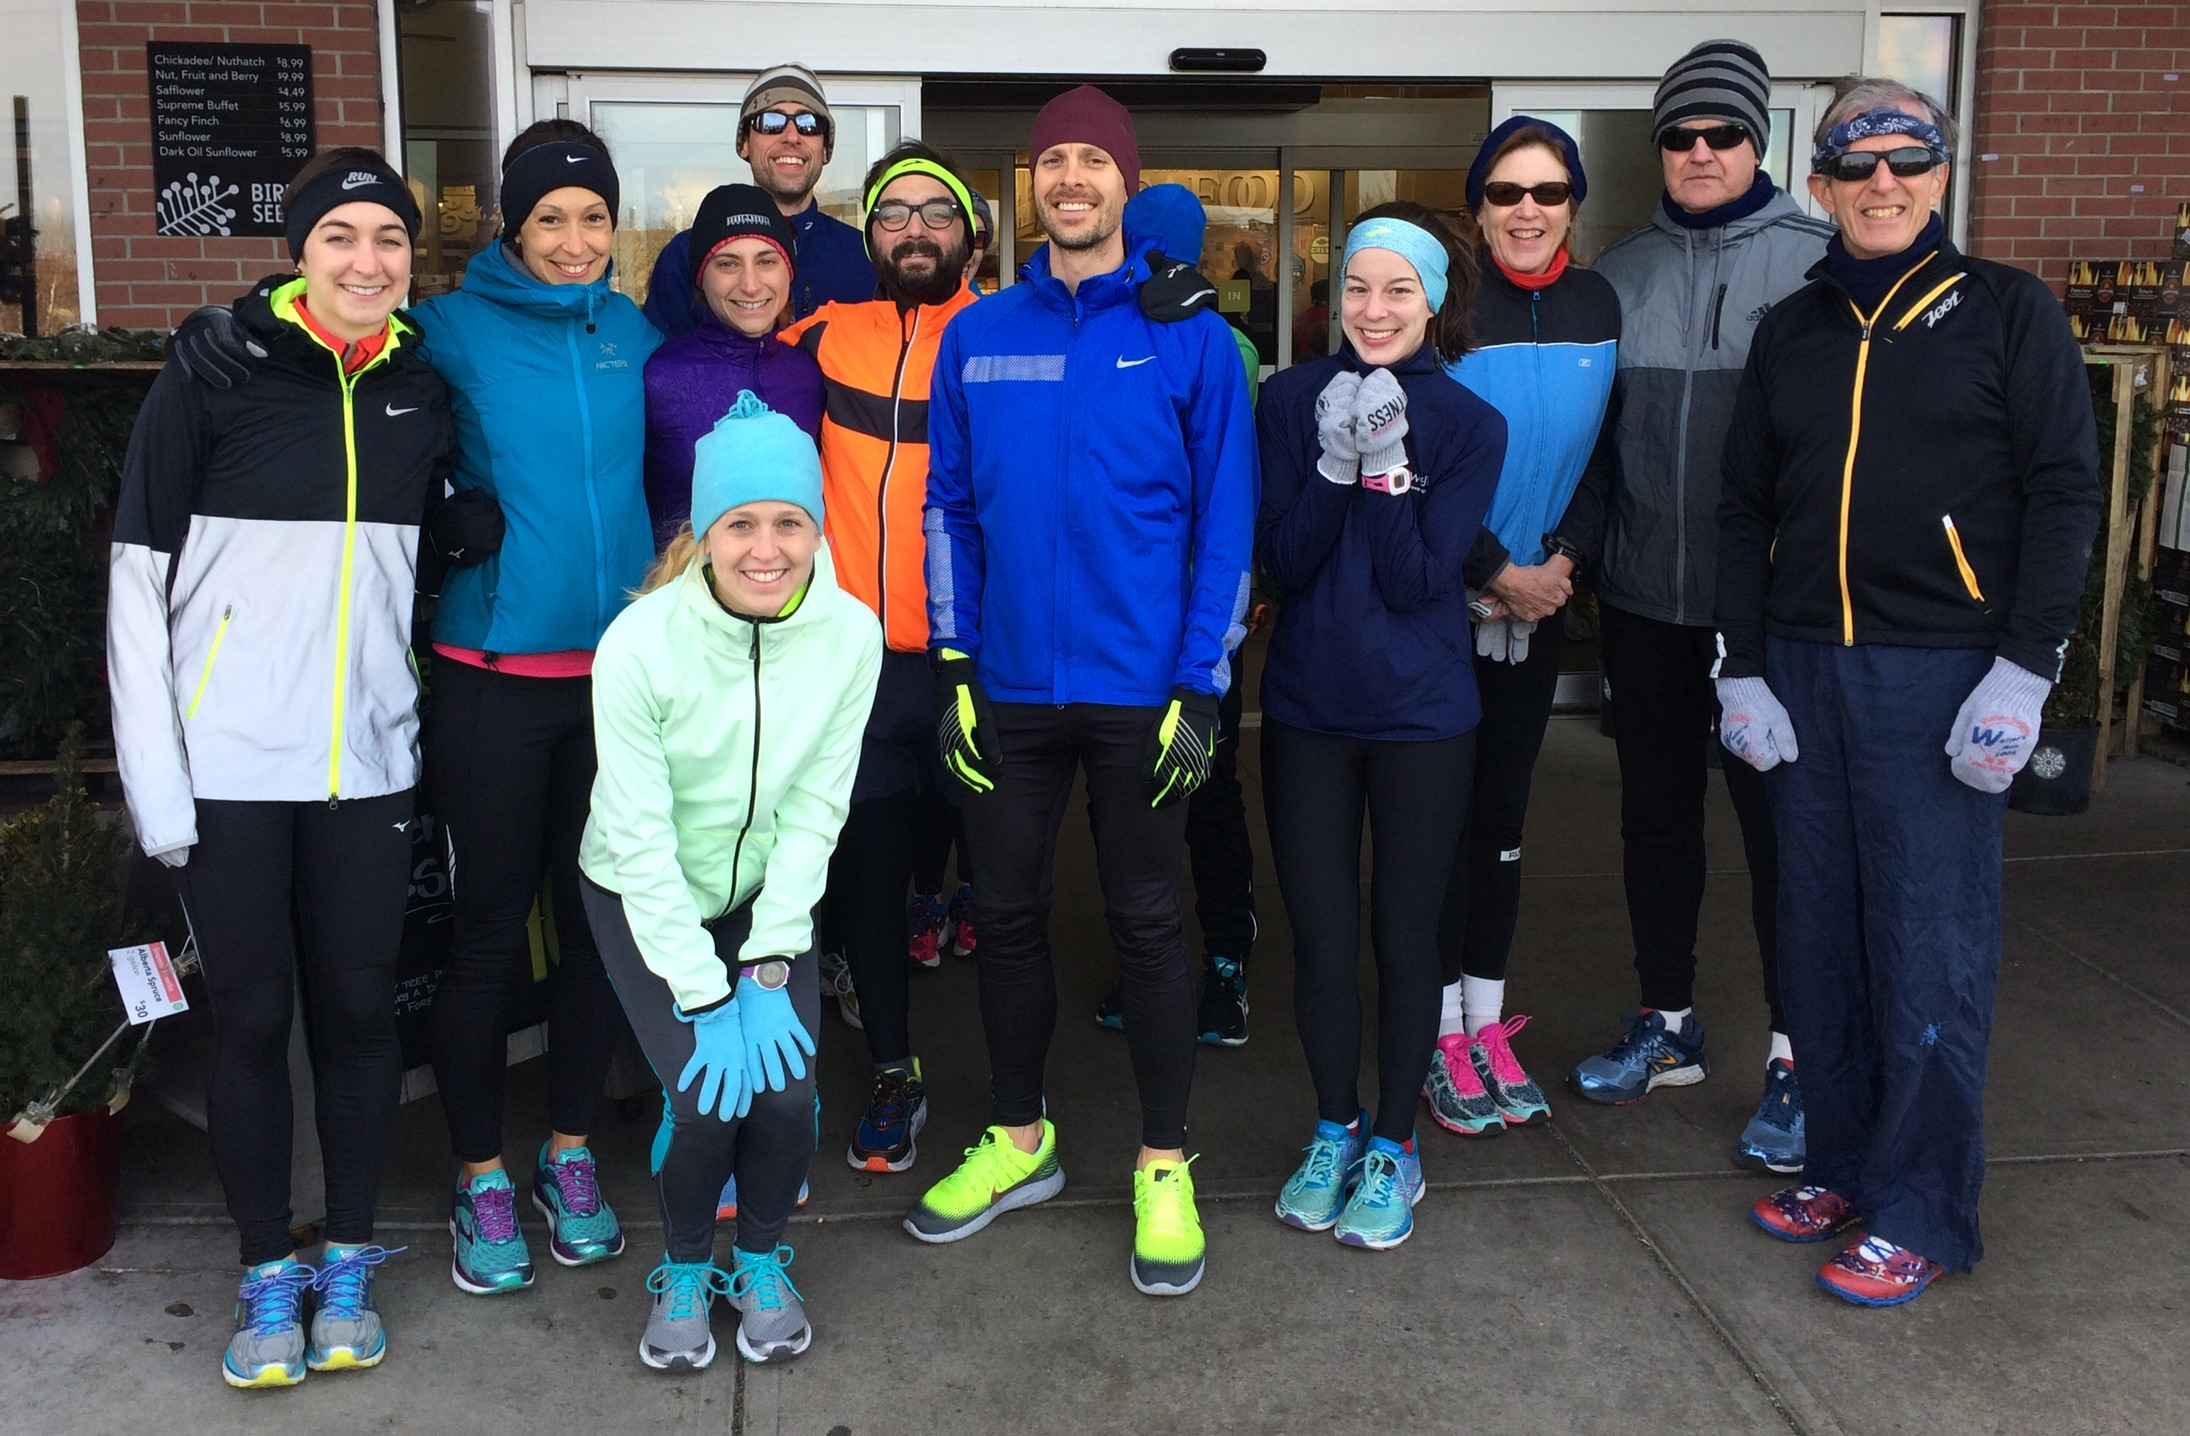 December Run Club at Whole Foods, with many of my Training Joyfully clients that I have the pleasure of coaching!